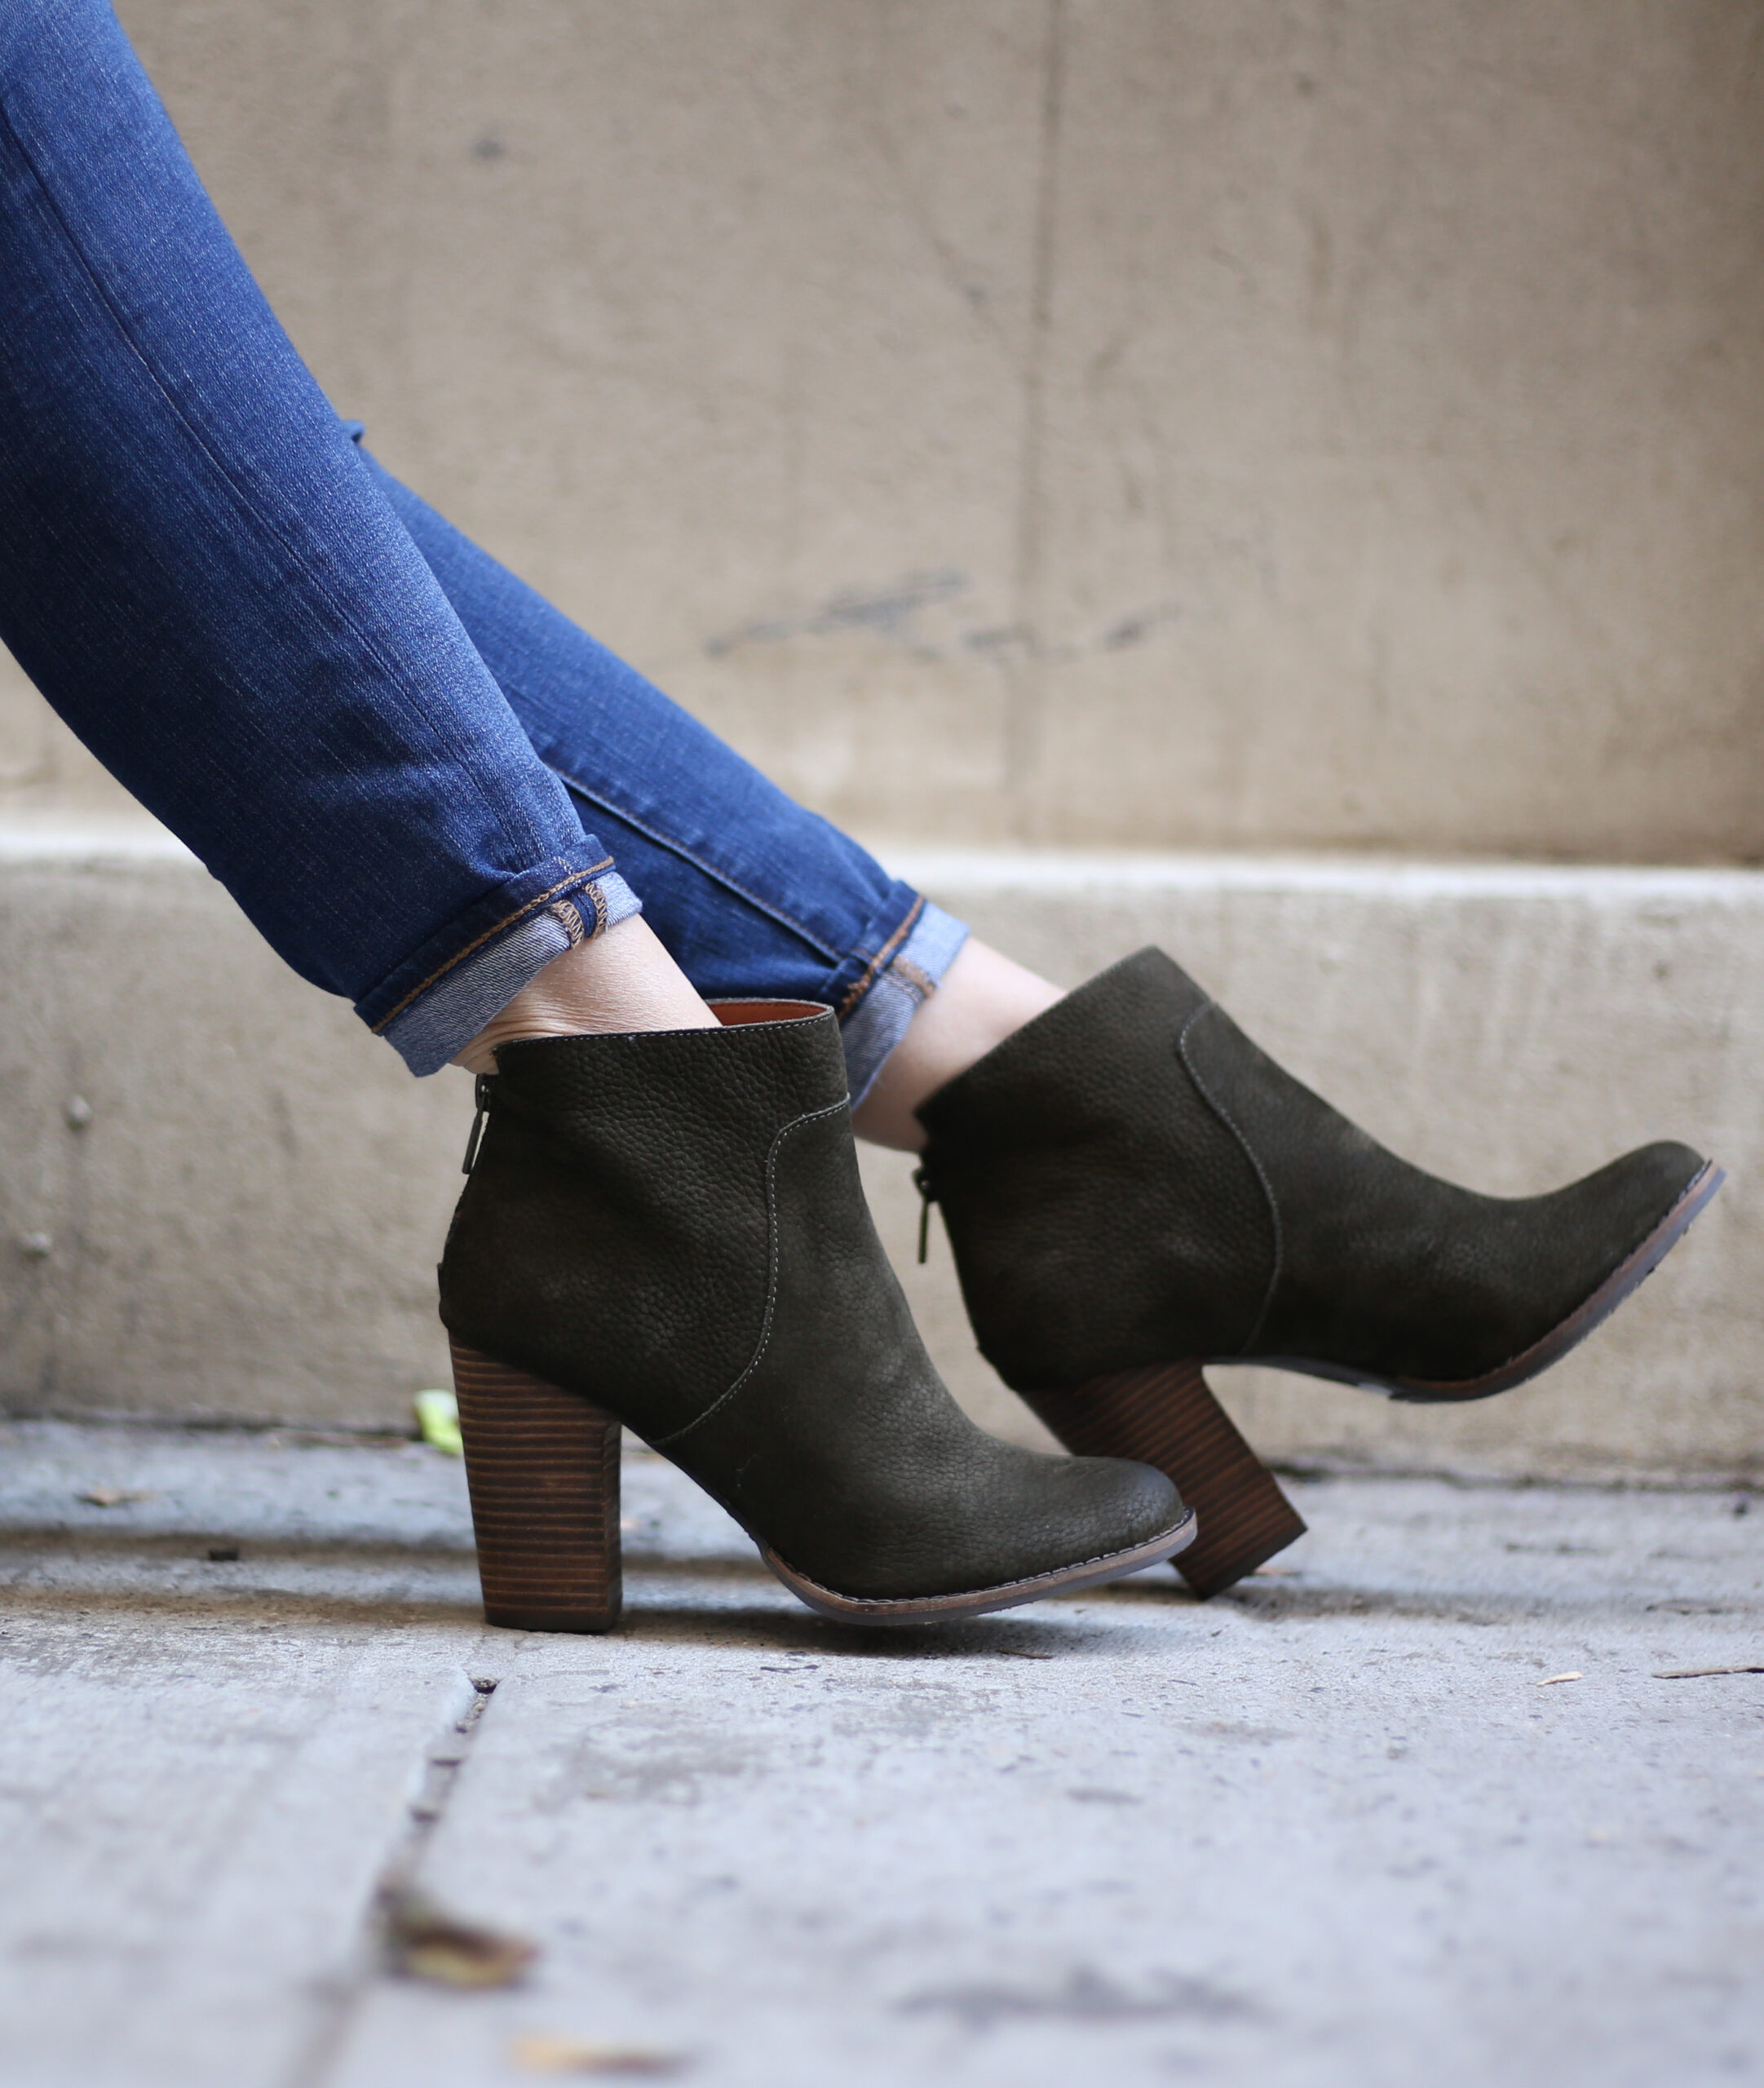 anna monterio of blushing rose style wearing Lucky brand booties